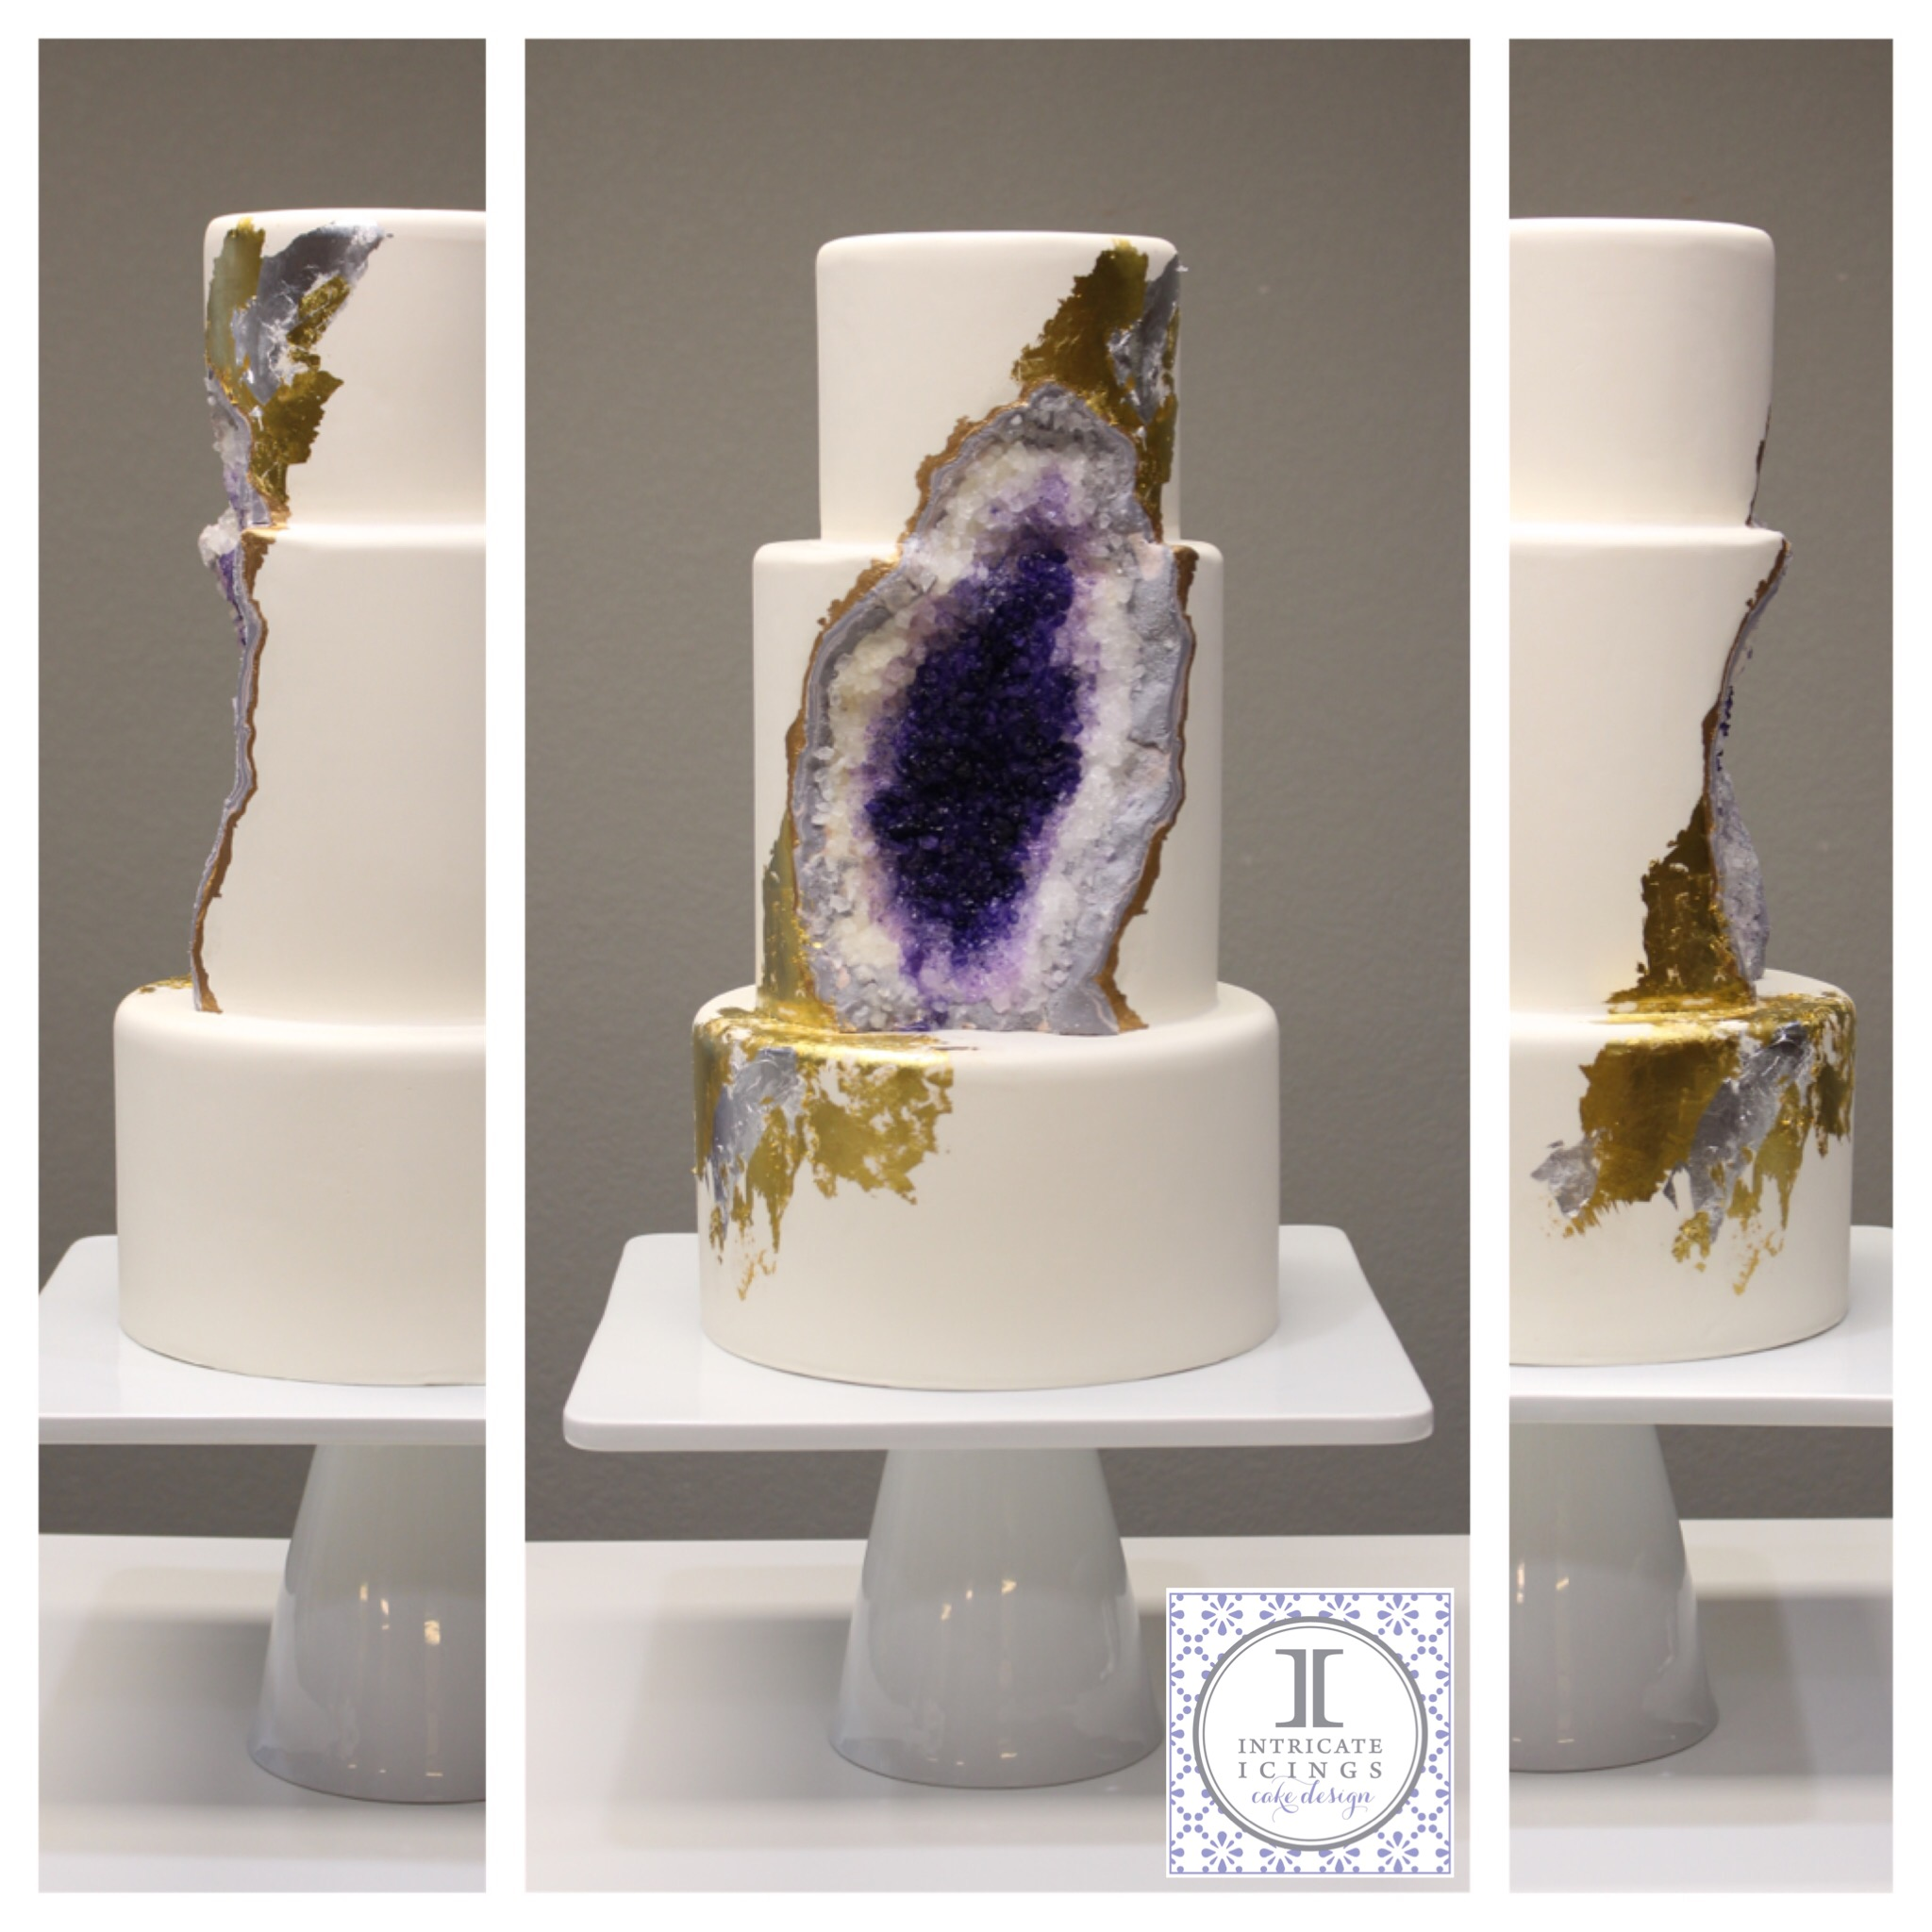 Intricate Icings Cake Design Geode Cake